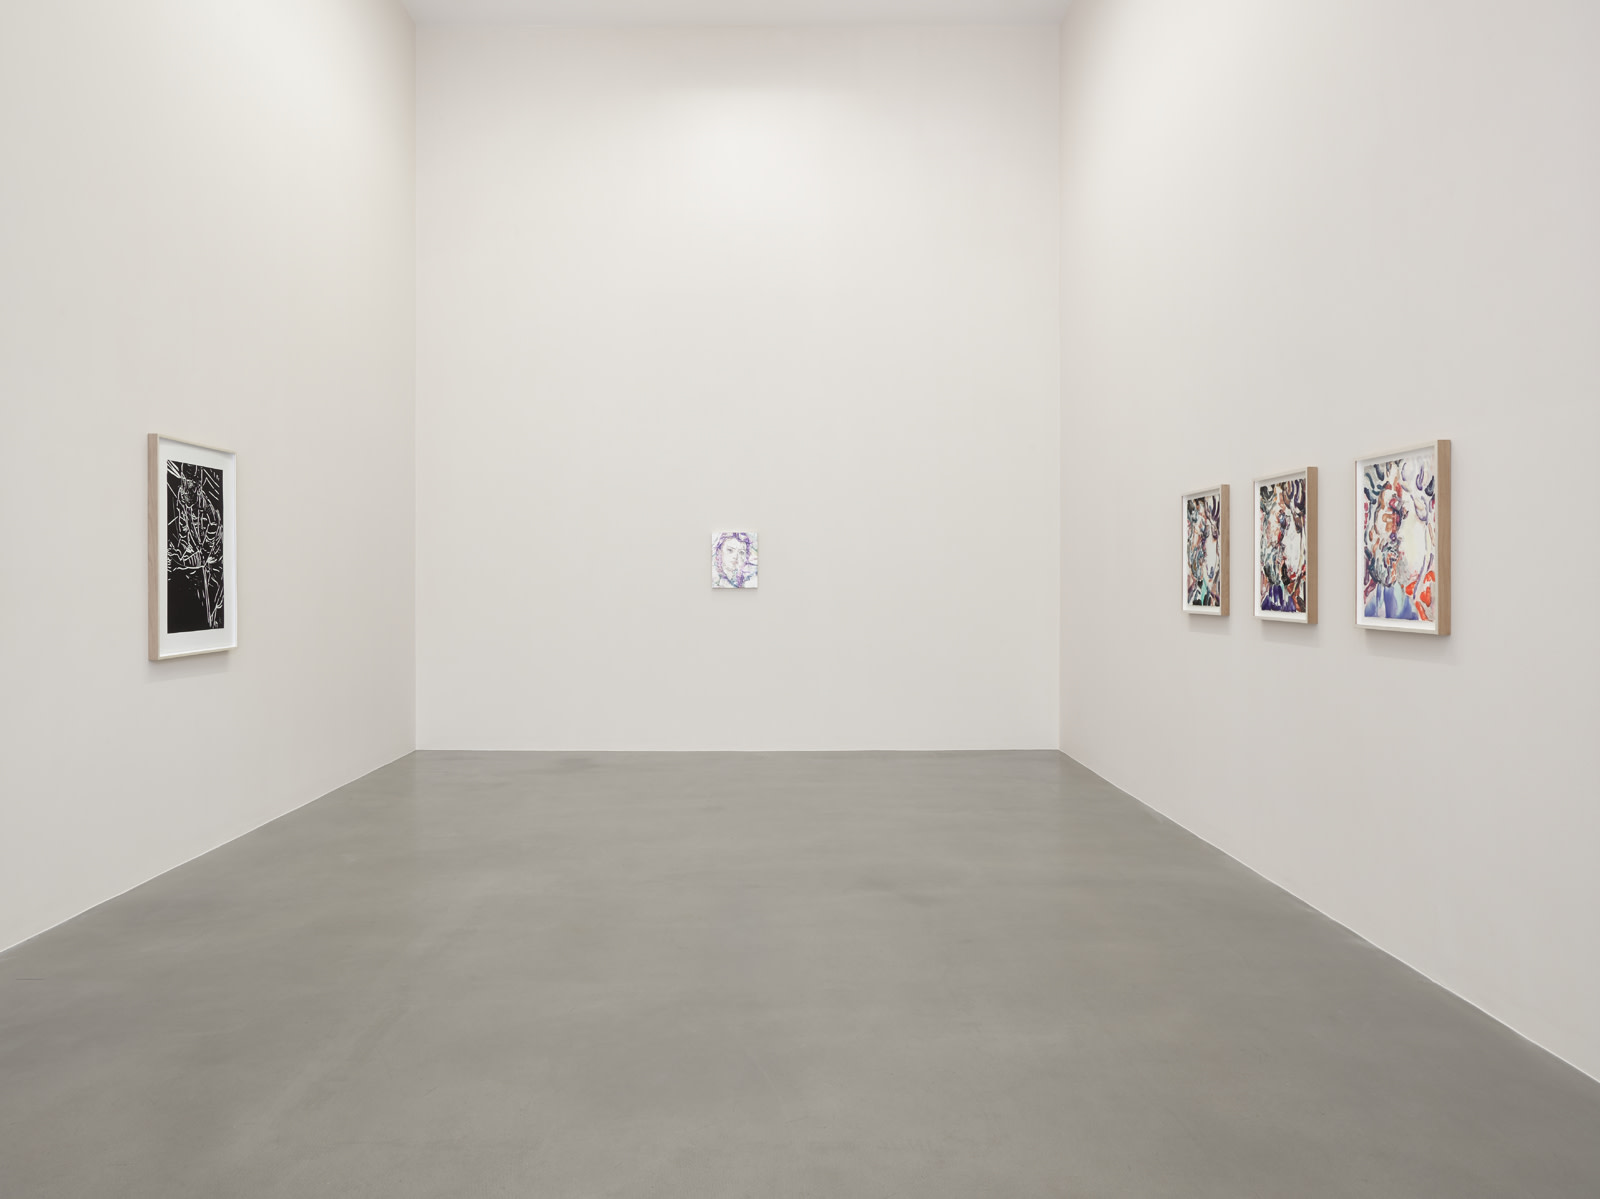 "<div class=""artwork_caption""><p>Installation view, 2019<br />Photo: Jack Hems</p></div>"